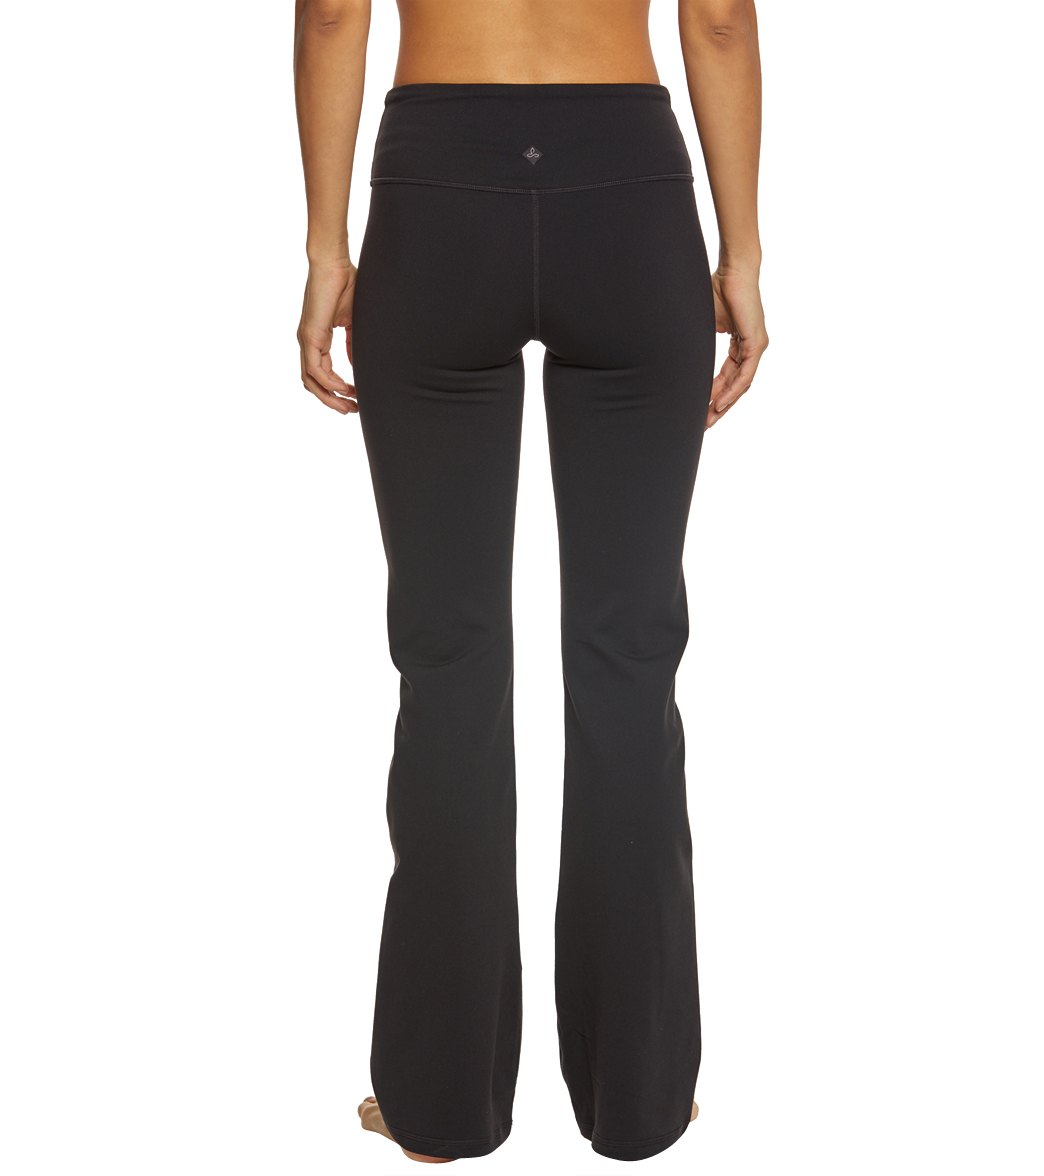 bfdded7e31f49 Prana Pillar Yoga Pants at YogaOutlet.com - Free Shipping